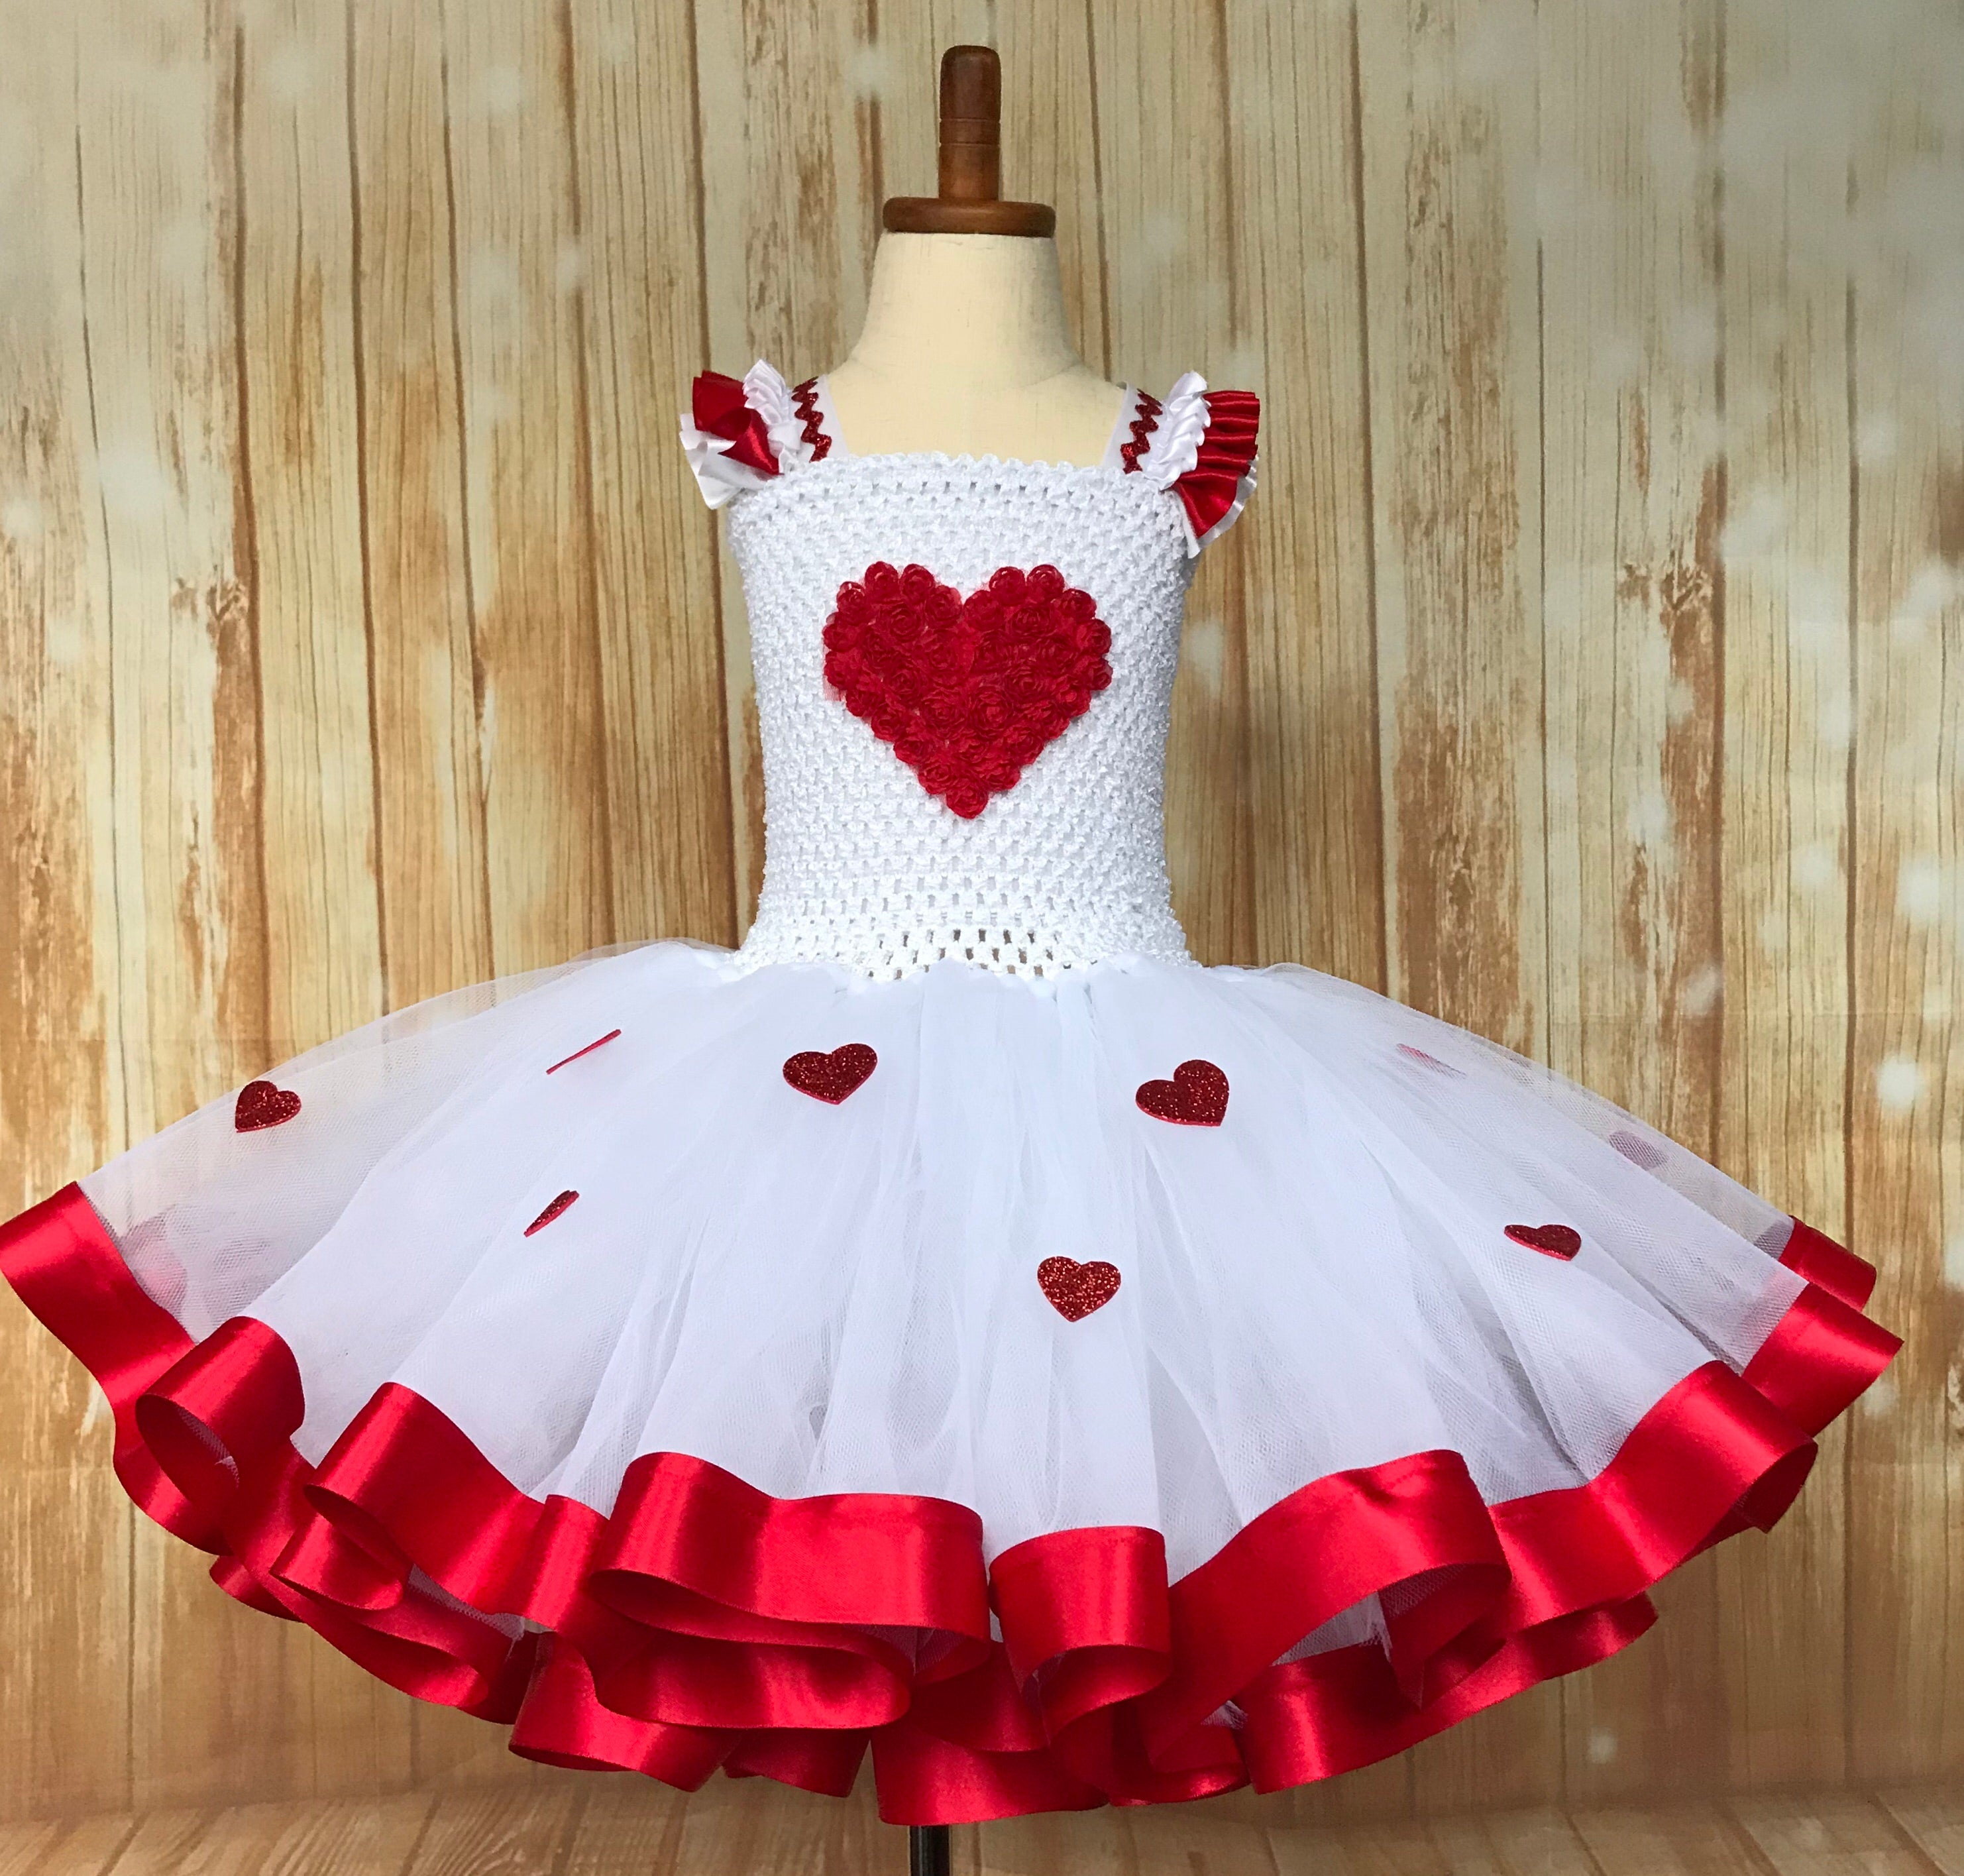 Valentines Tutu, Heart Tutu, Cupid Tutu, Valentine's Day Photo Session Tutu Dress